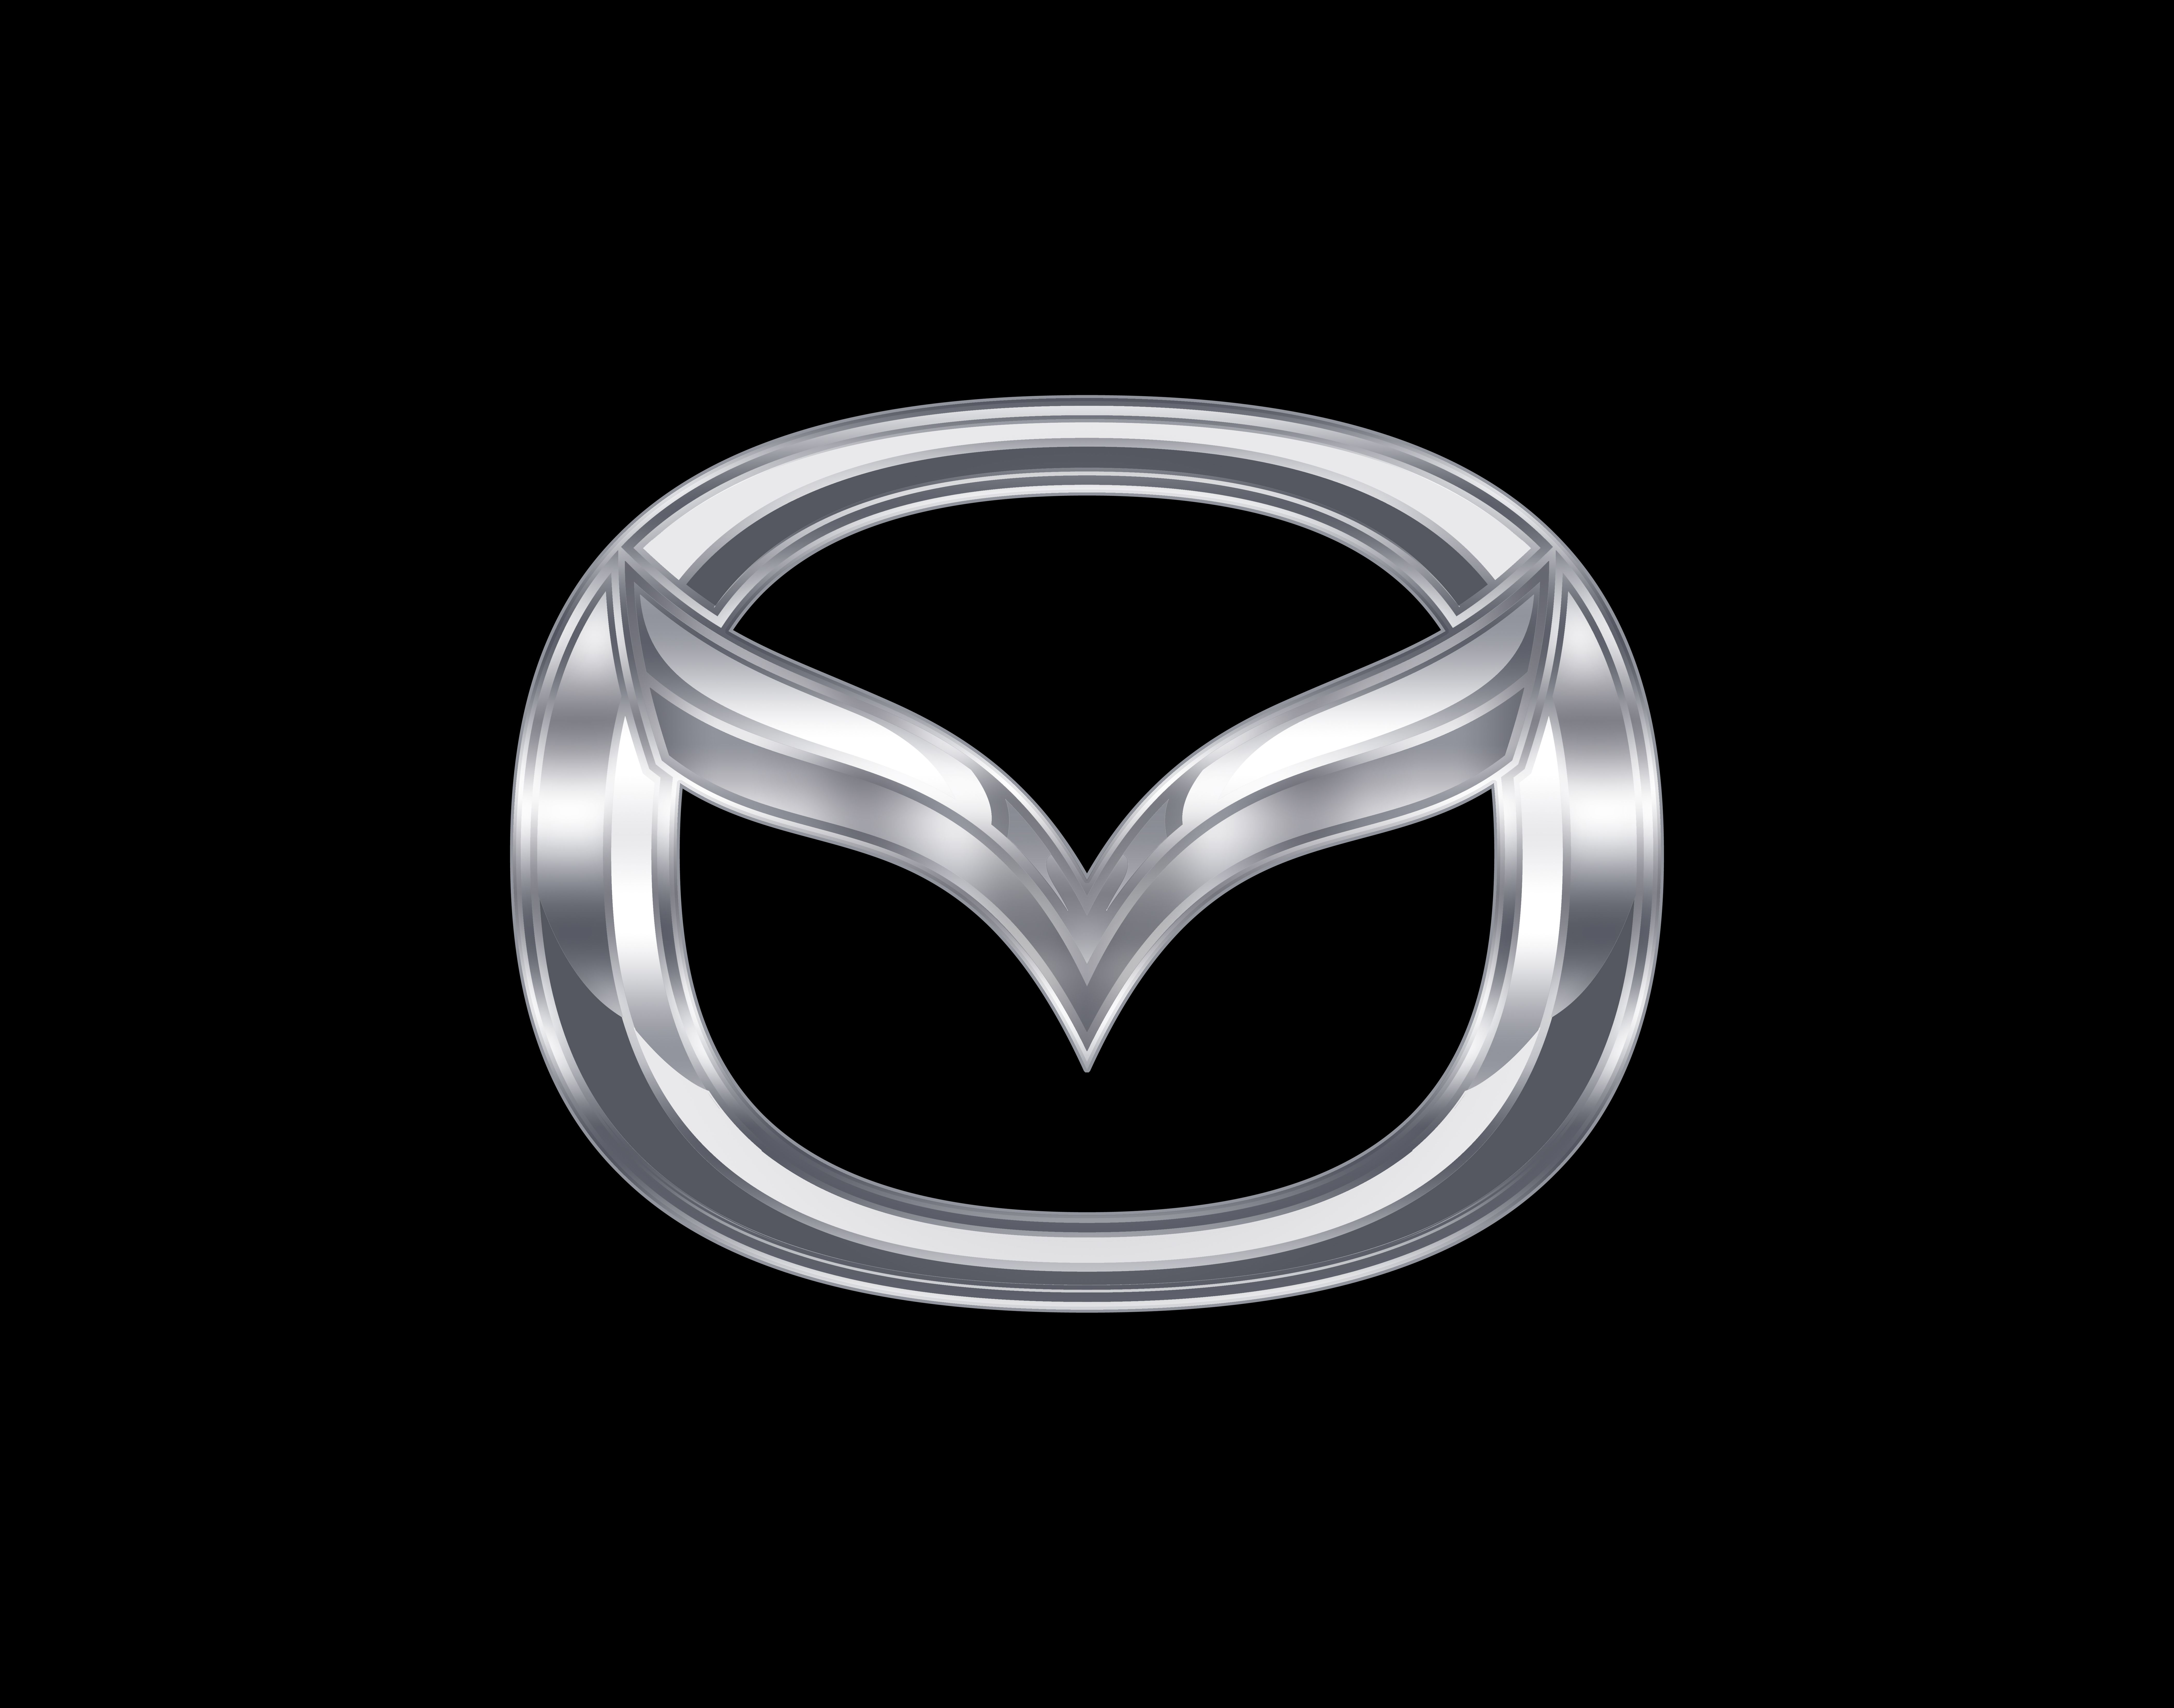 Black and Silver Car Logo - Mazda Logo, Mazda Car Symbol Meaning and History | Car Brand Names.com